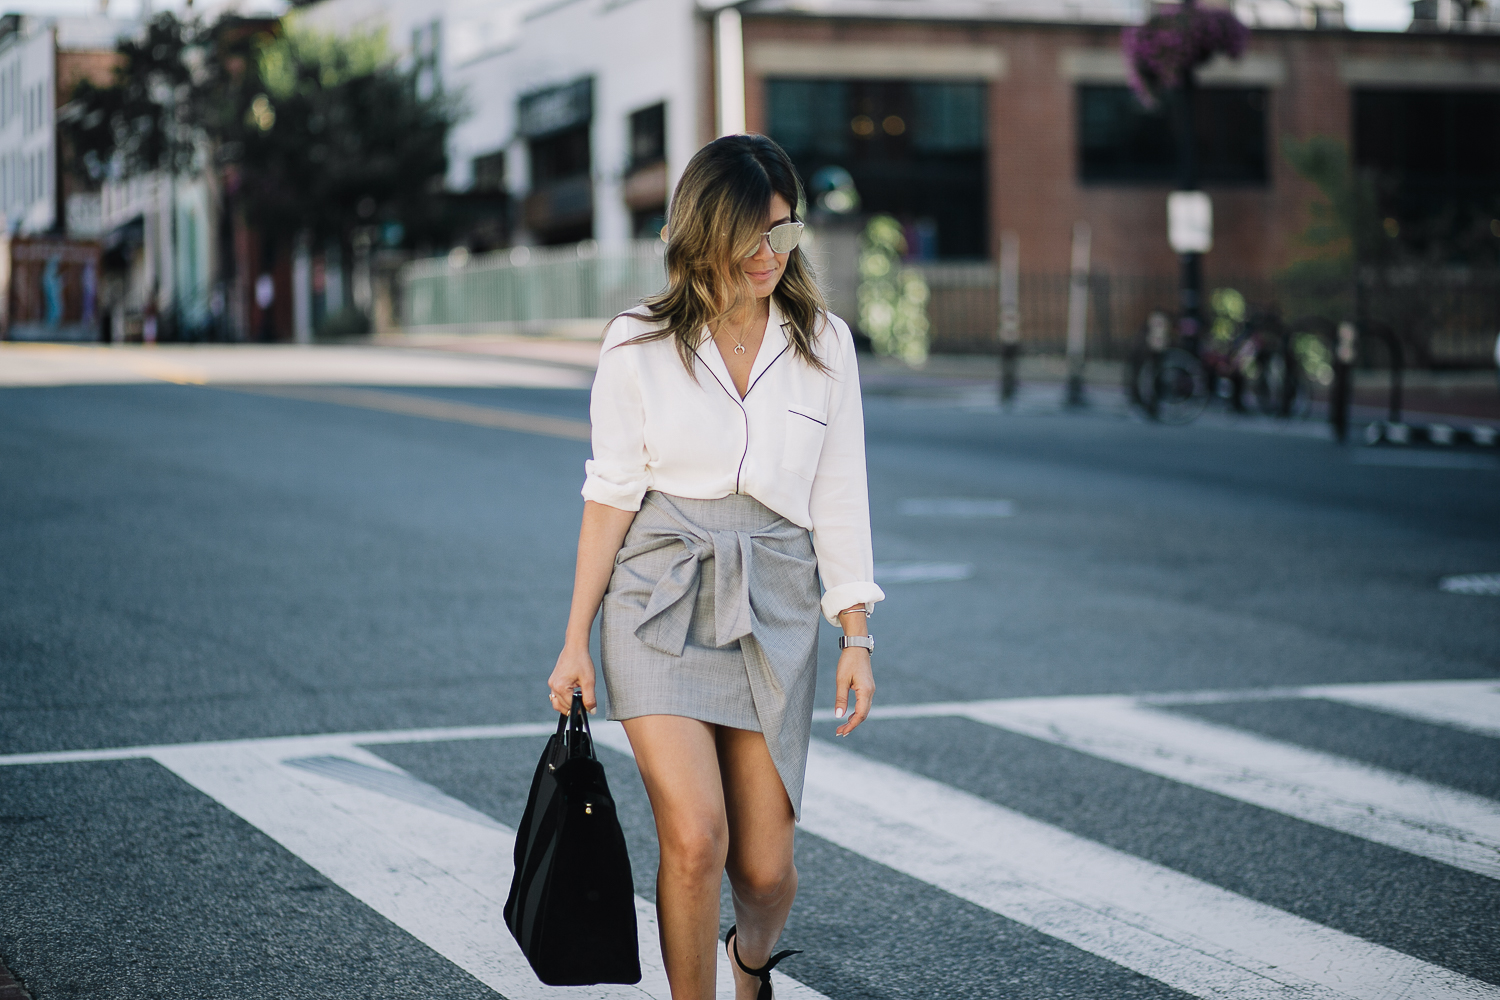 Style MBA wears Clare V Tote at Nordstrom and New Look Top from Asos